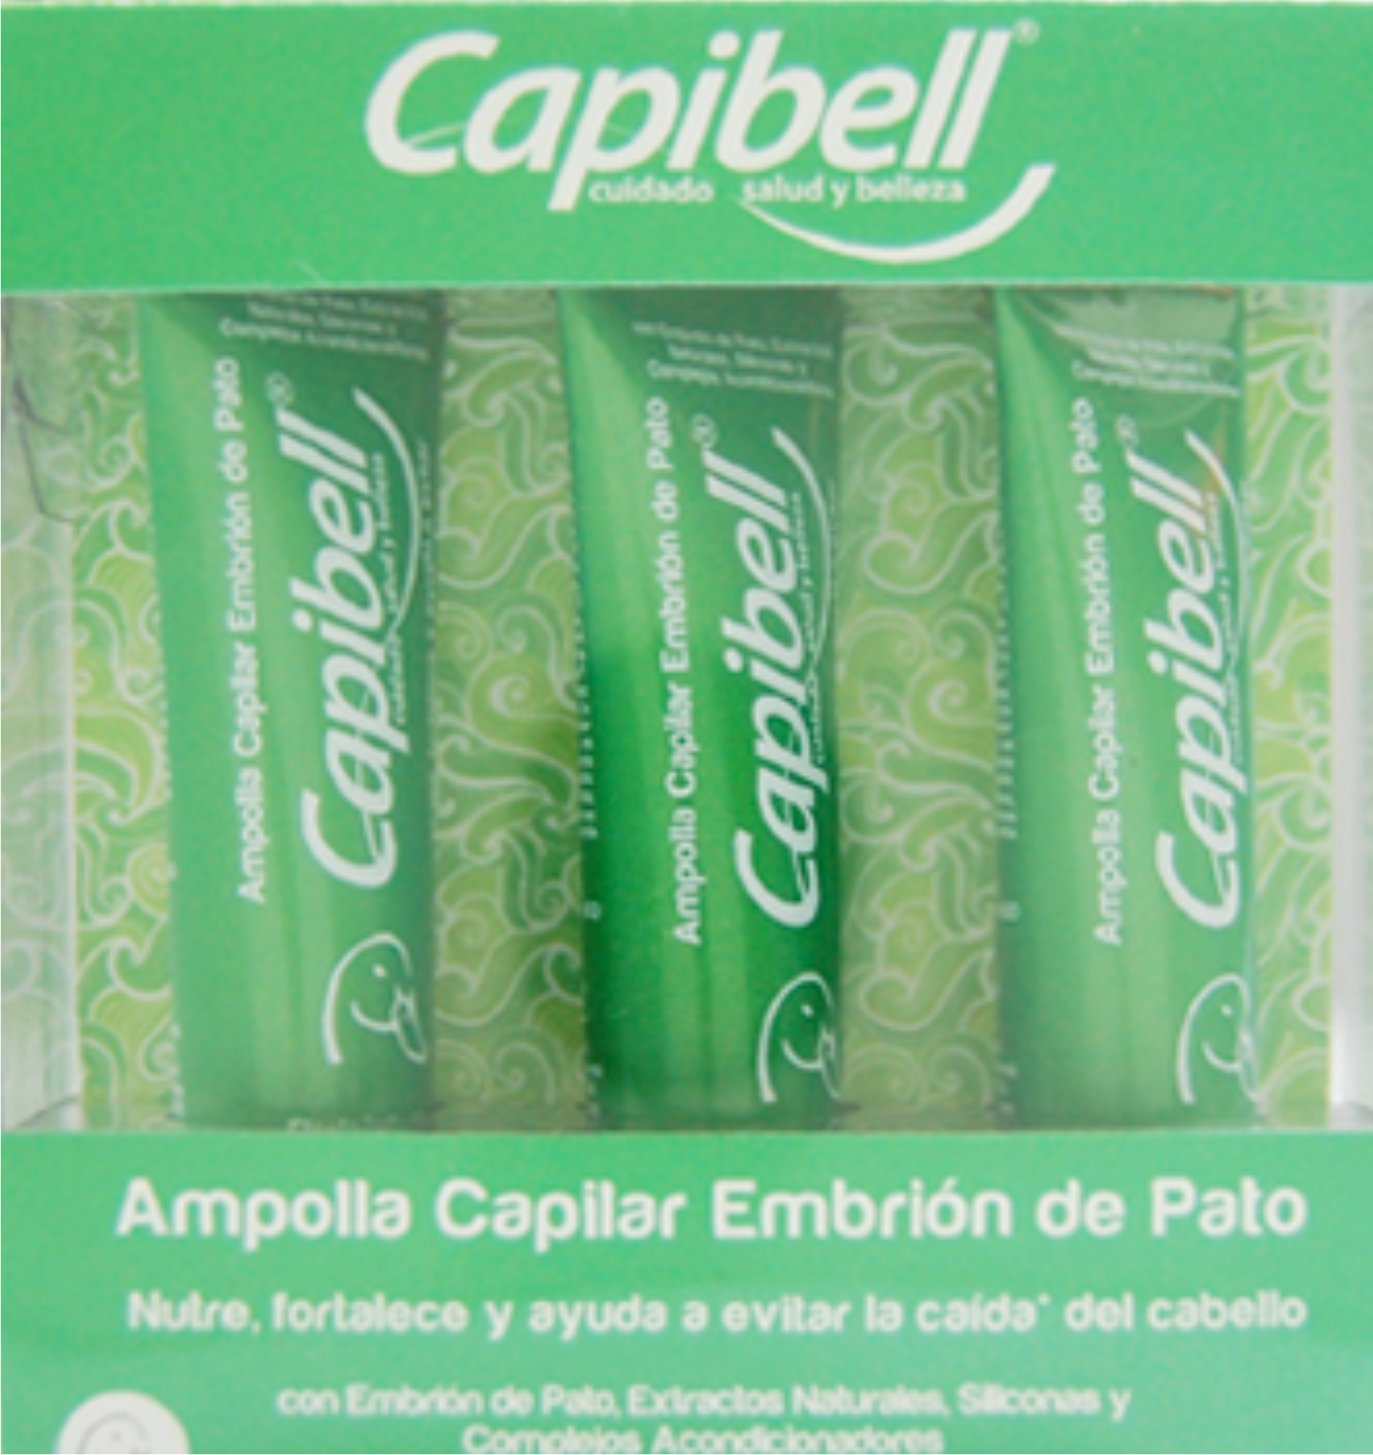 Amazon.com : CAPIBELL-Embrion de Pato Ampolla Tratamiento anti caida (BOX 3PCS) : Beauty